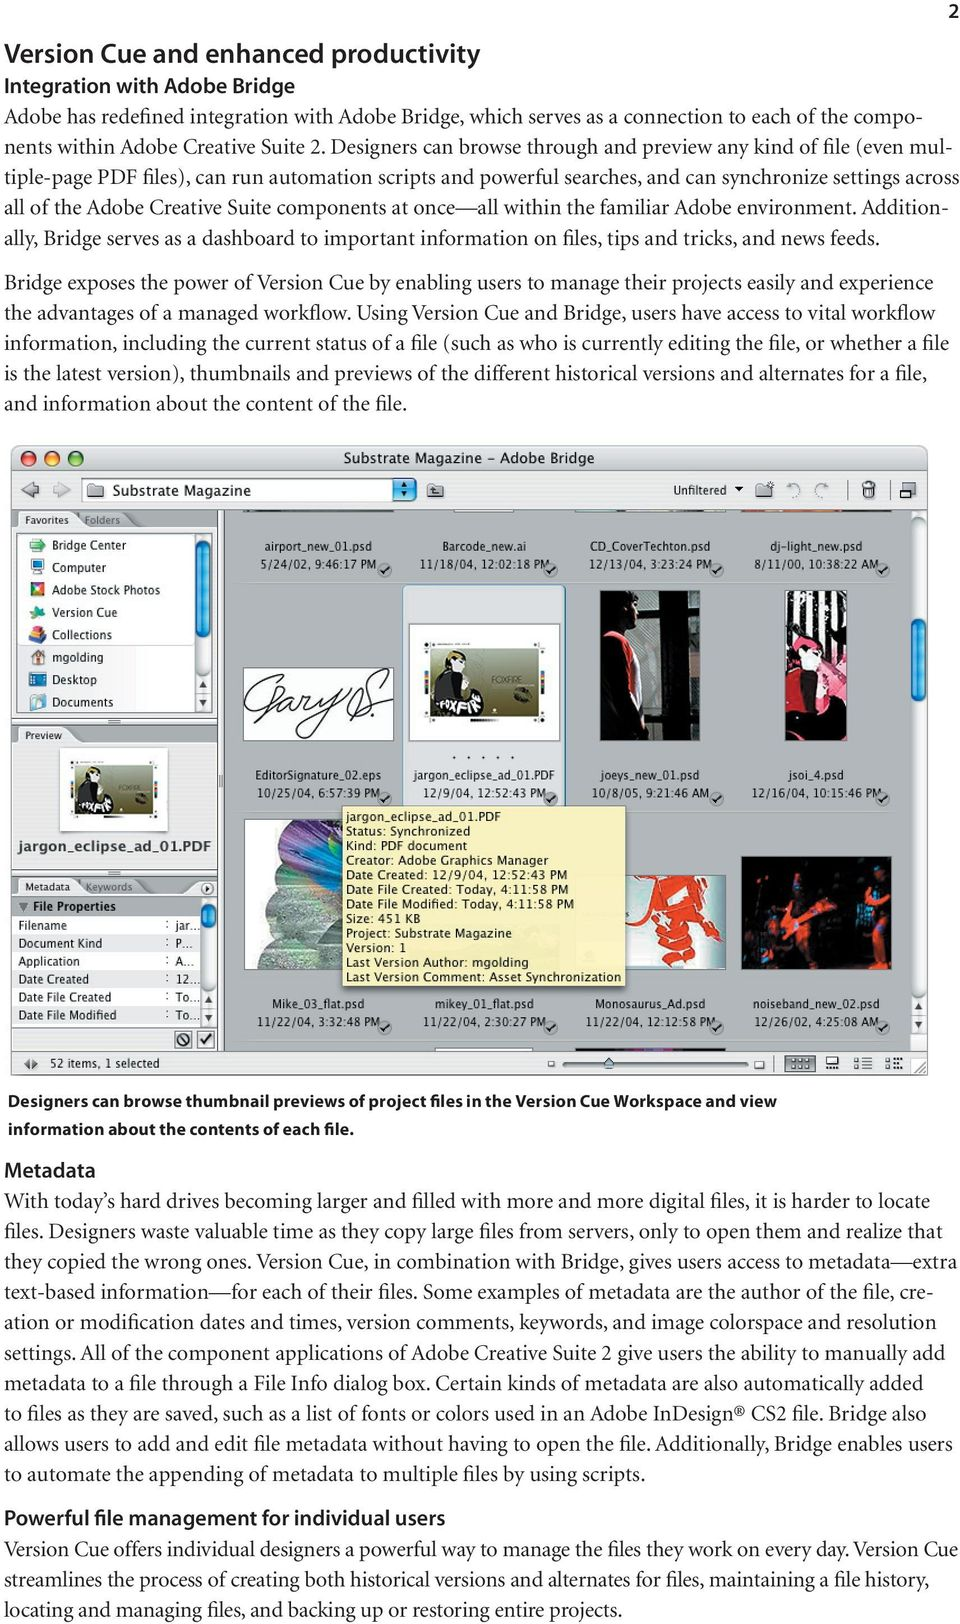 Designers can browse through and preview any kind of file (even multiple-page PDF files), can run automation scripts and powerful searches, and can synchronize settings across all of the Adobe